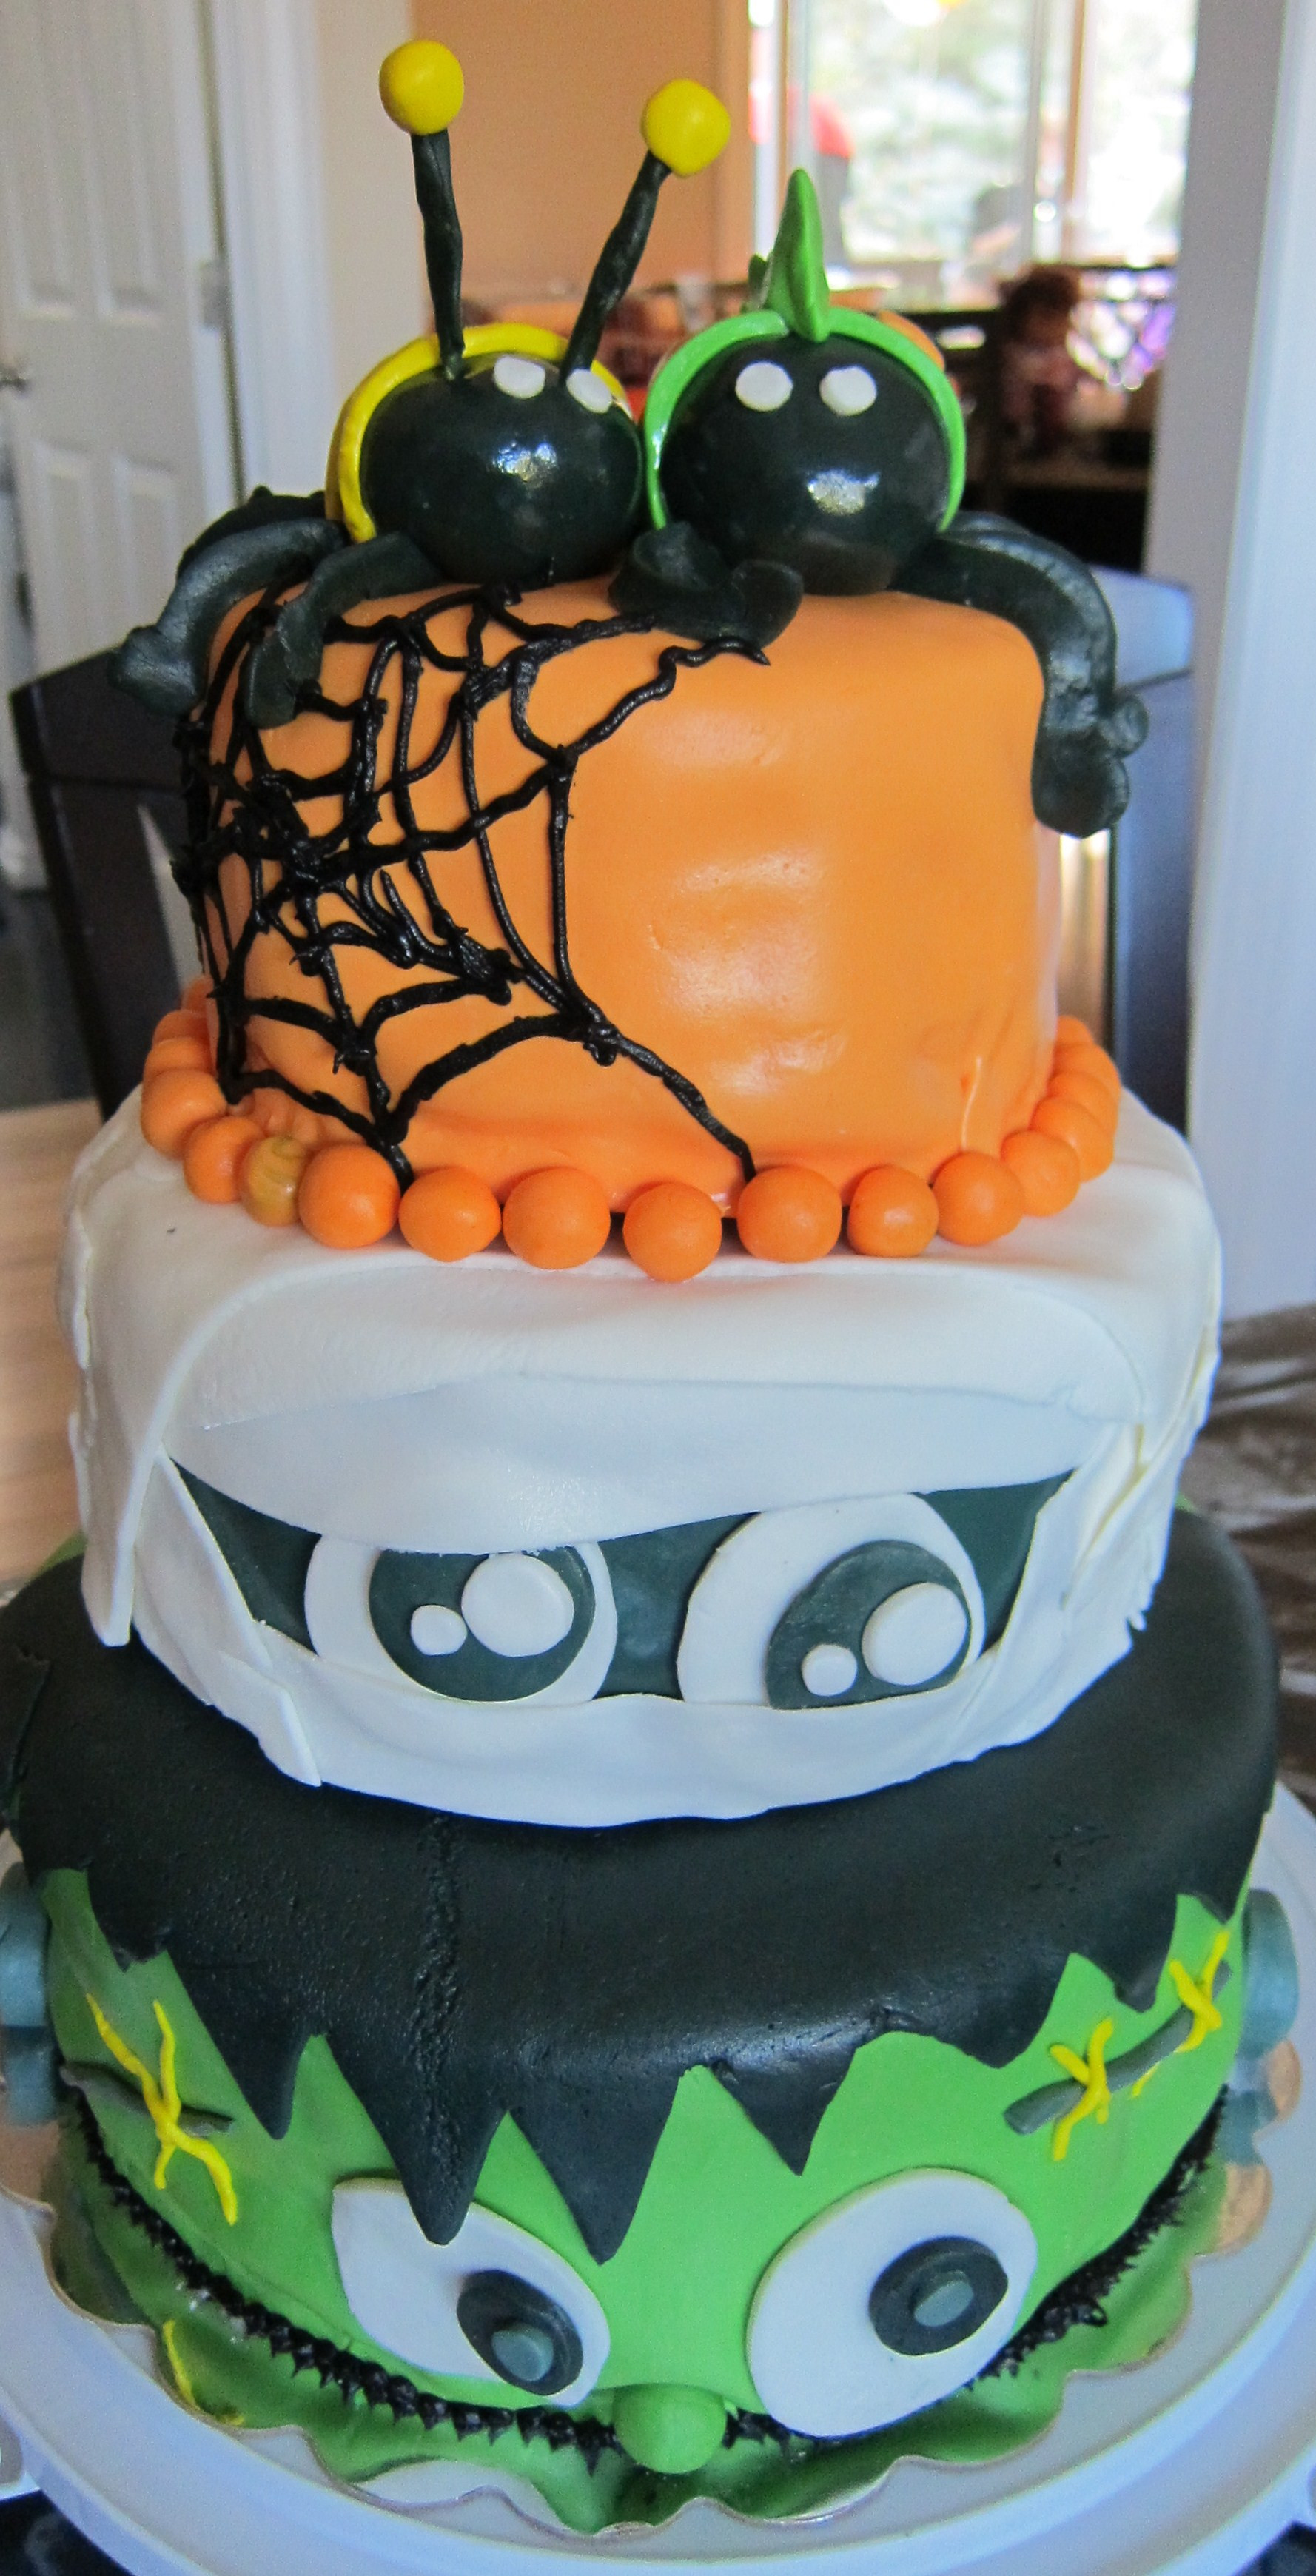 Homemade Halloween Cakes  Homemade Halloween Cakes – Festival Collections